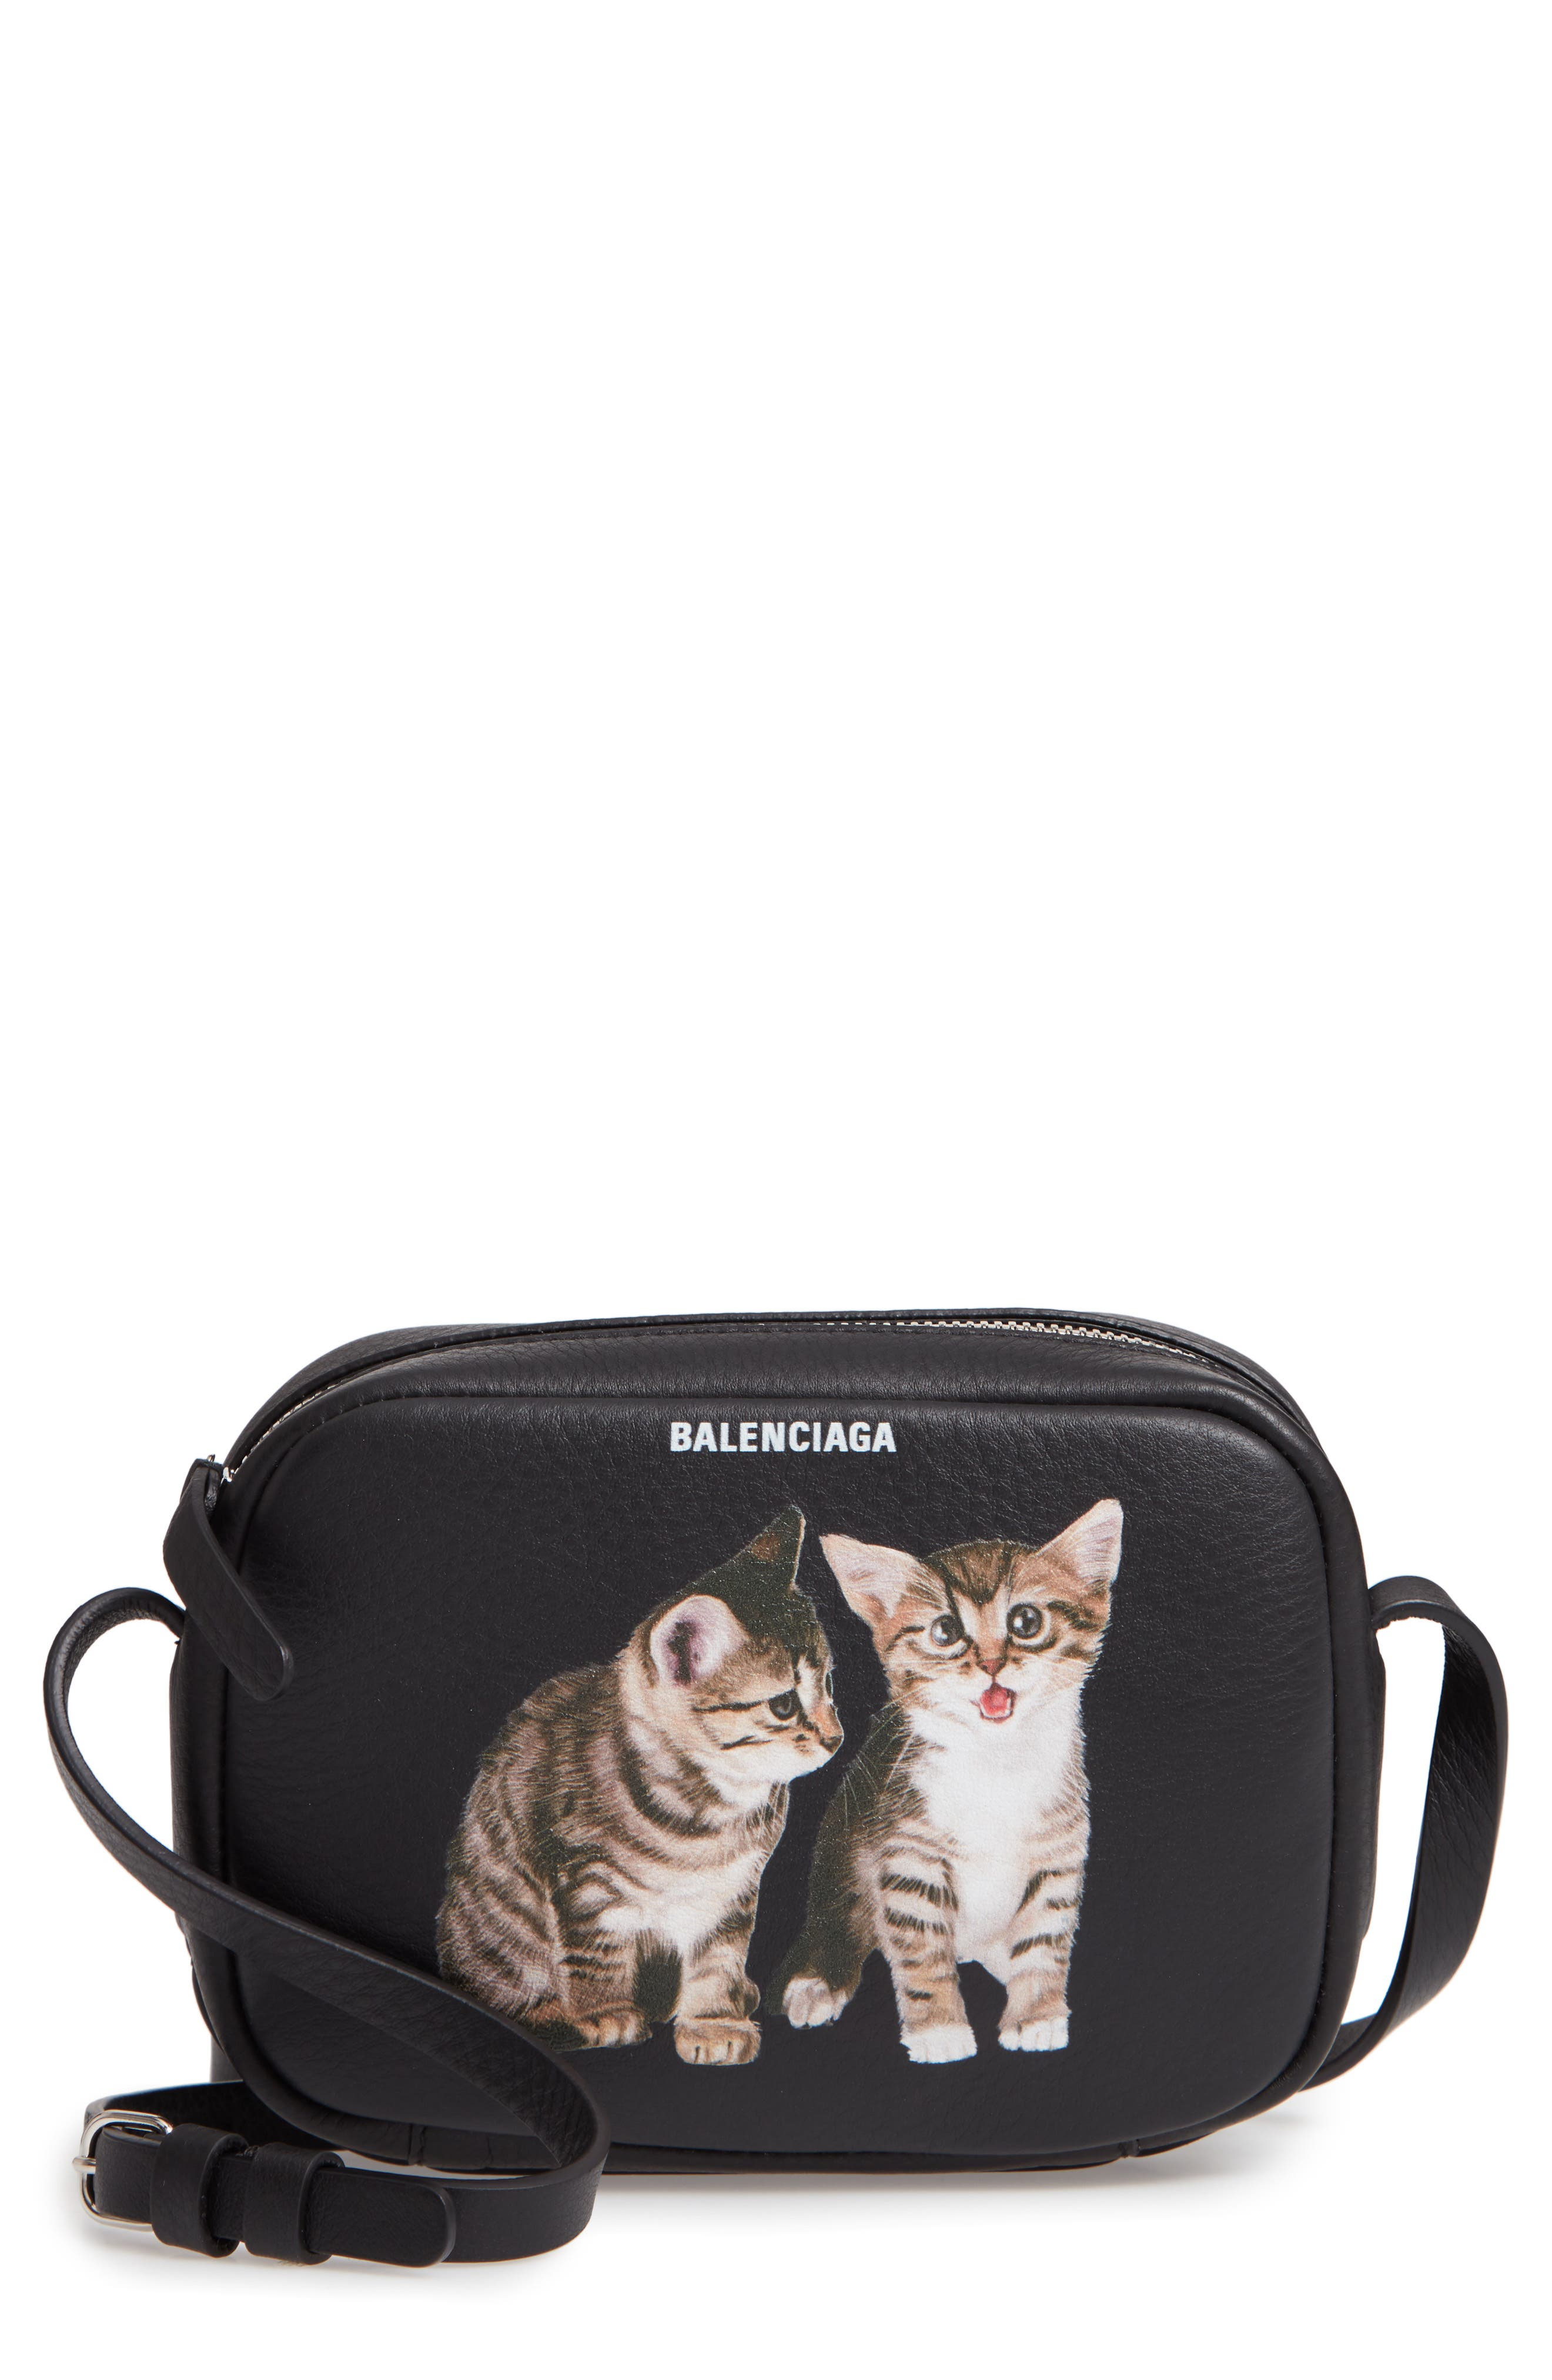 Extra Small Kittens Calfskin Leather Camera Bag - Black in 1090 Blk/Wh